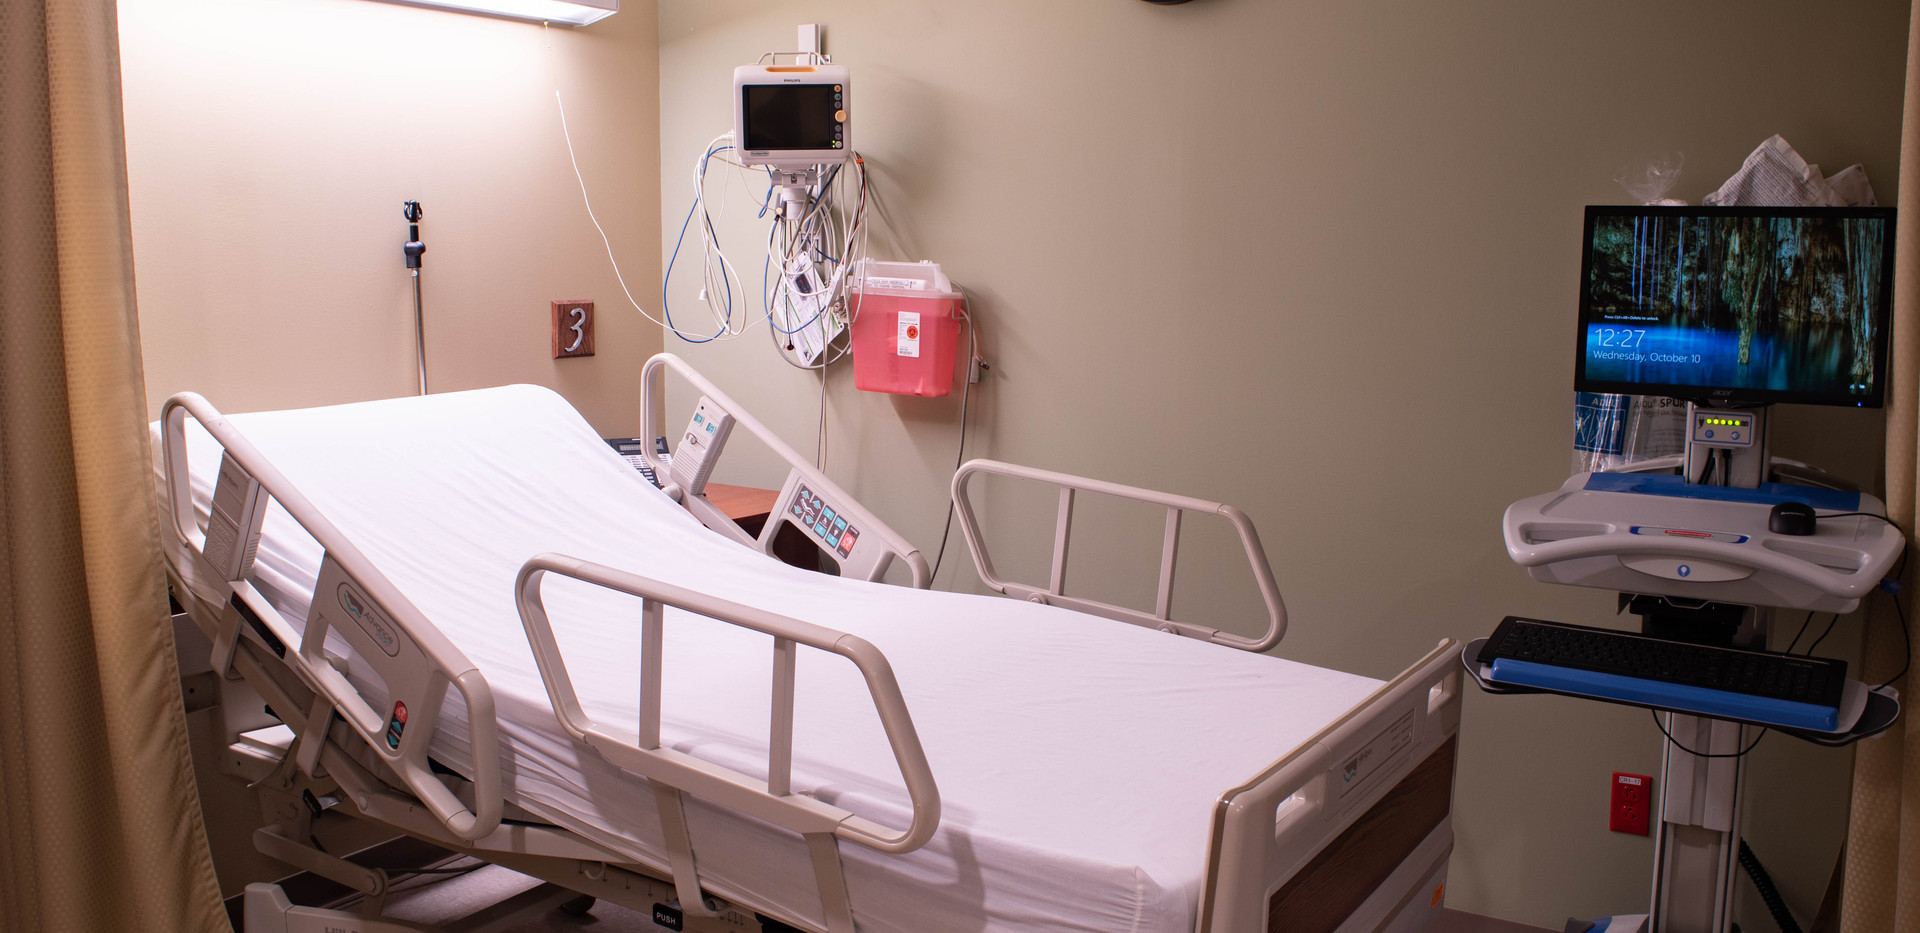 Post-Op Room